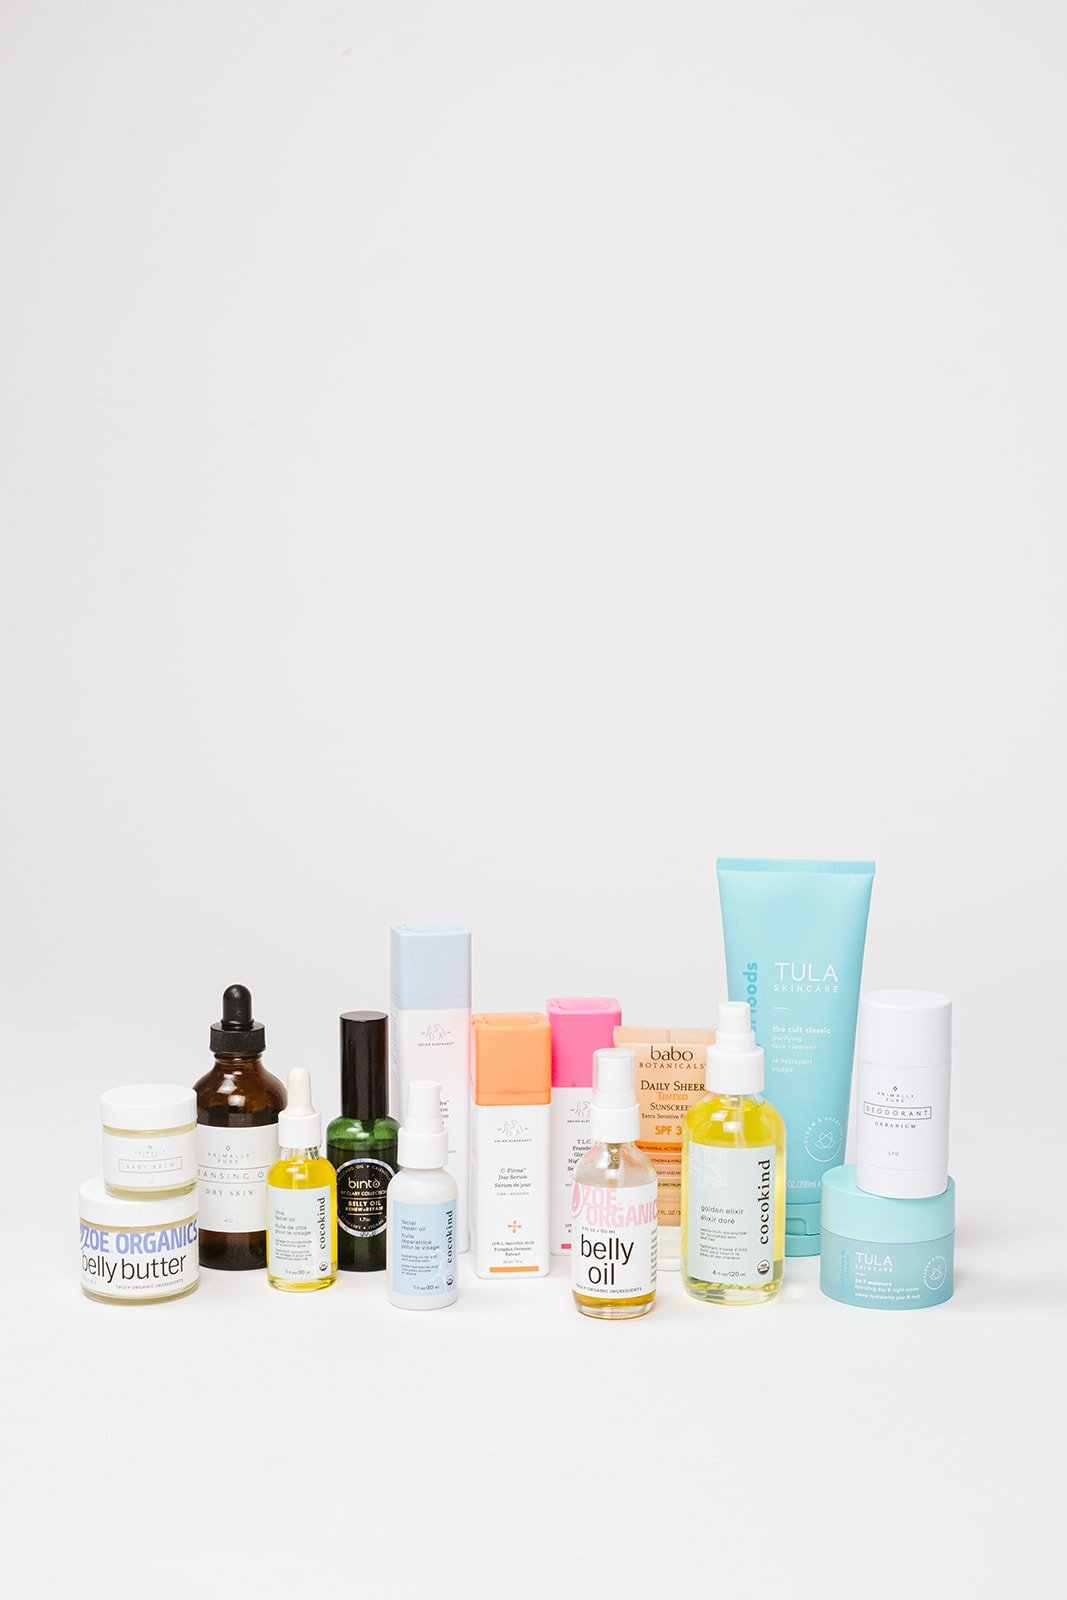 pregnancy skincare items in a line